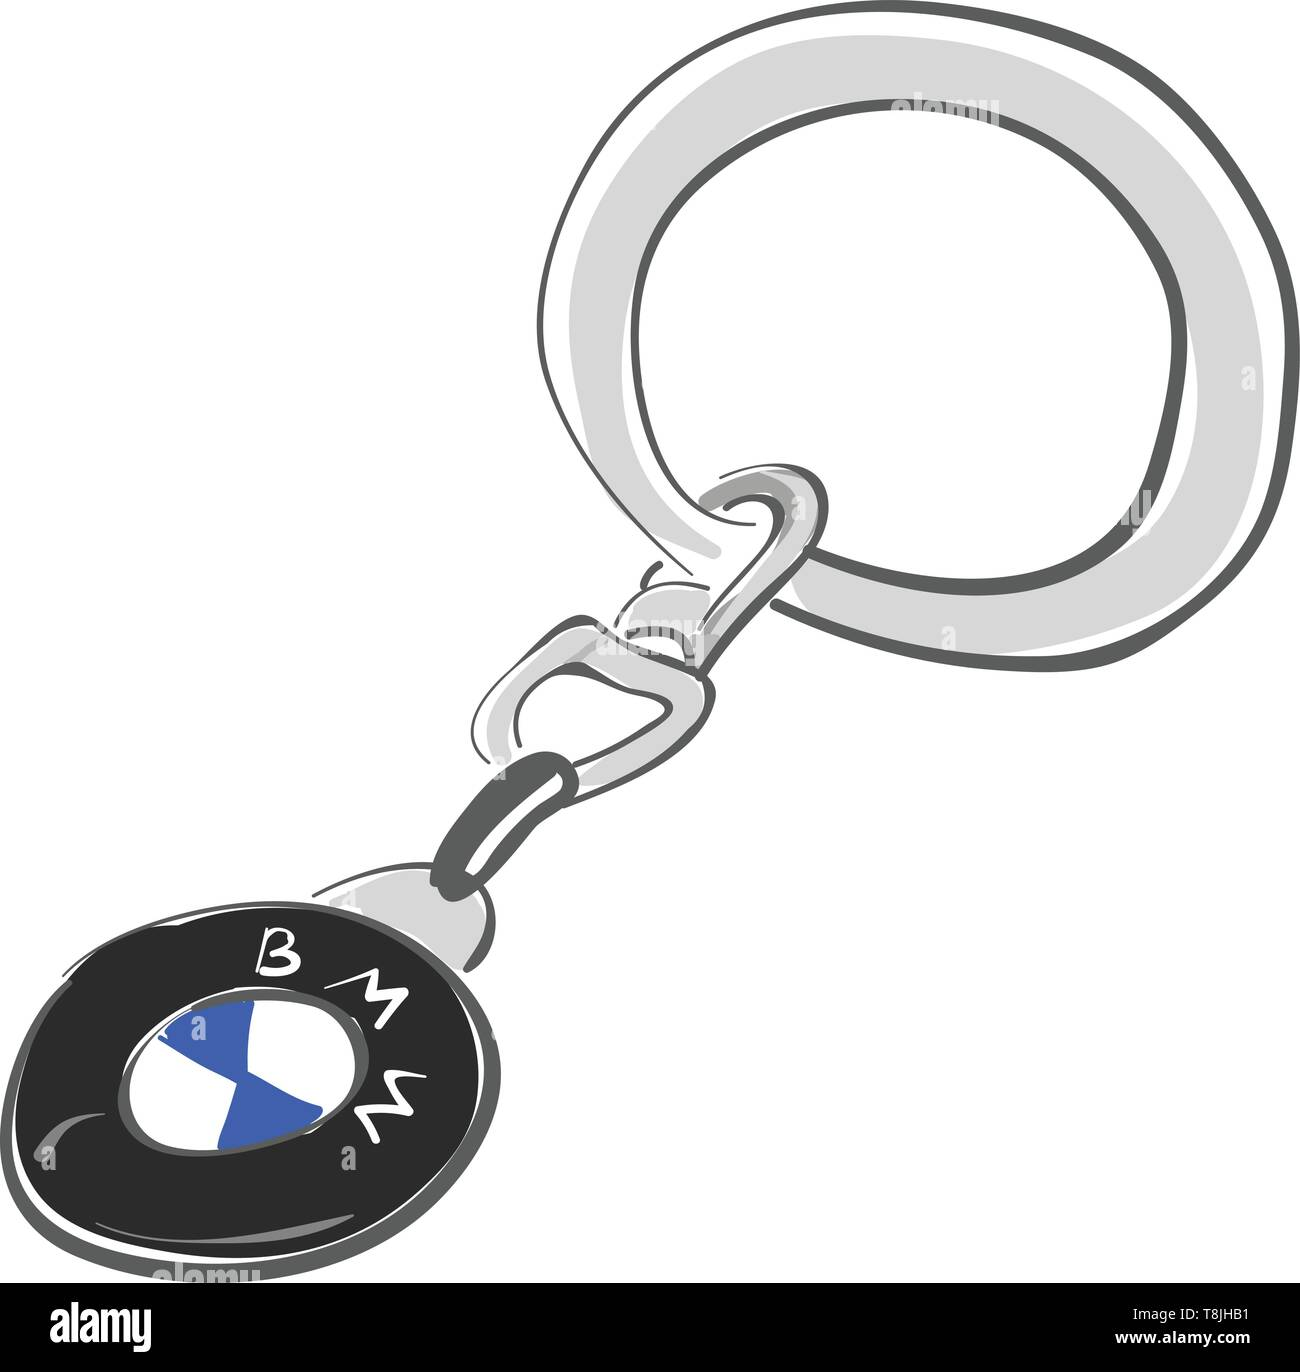 BMW keychain attached to a keyring, vector, color drawing or illustration. - Stock Vector